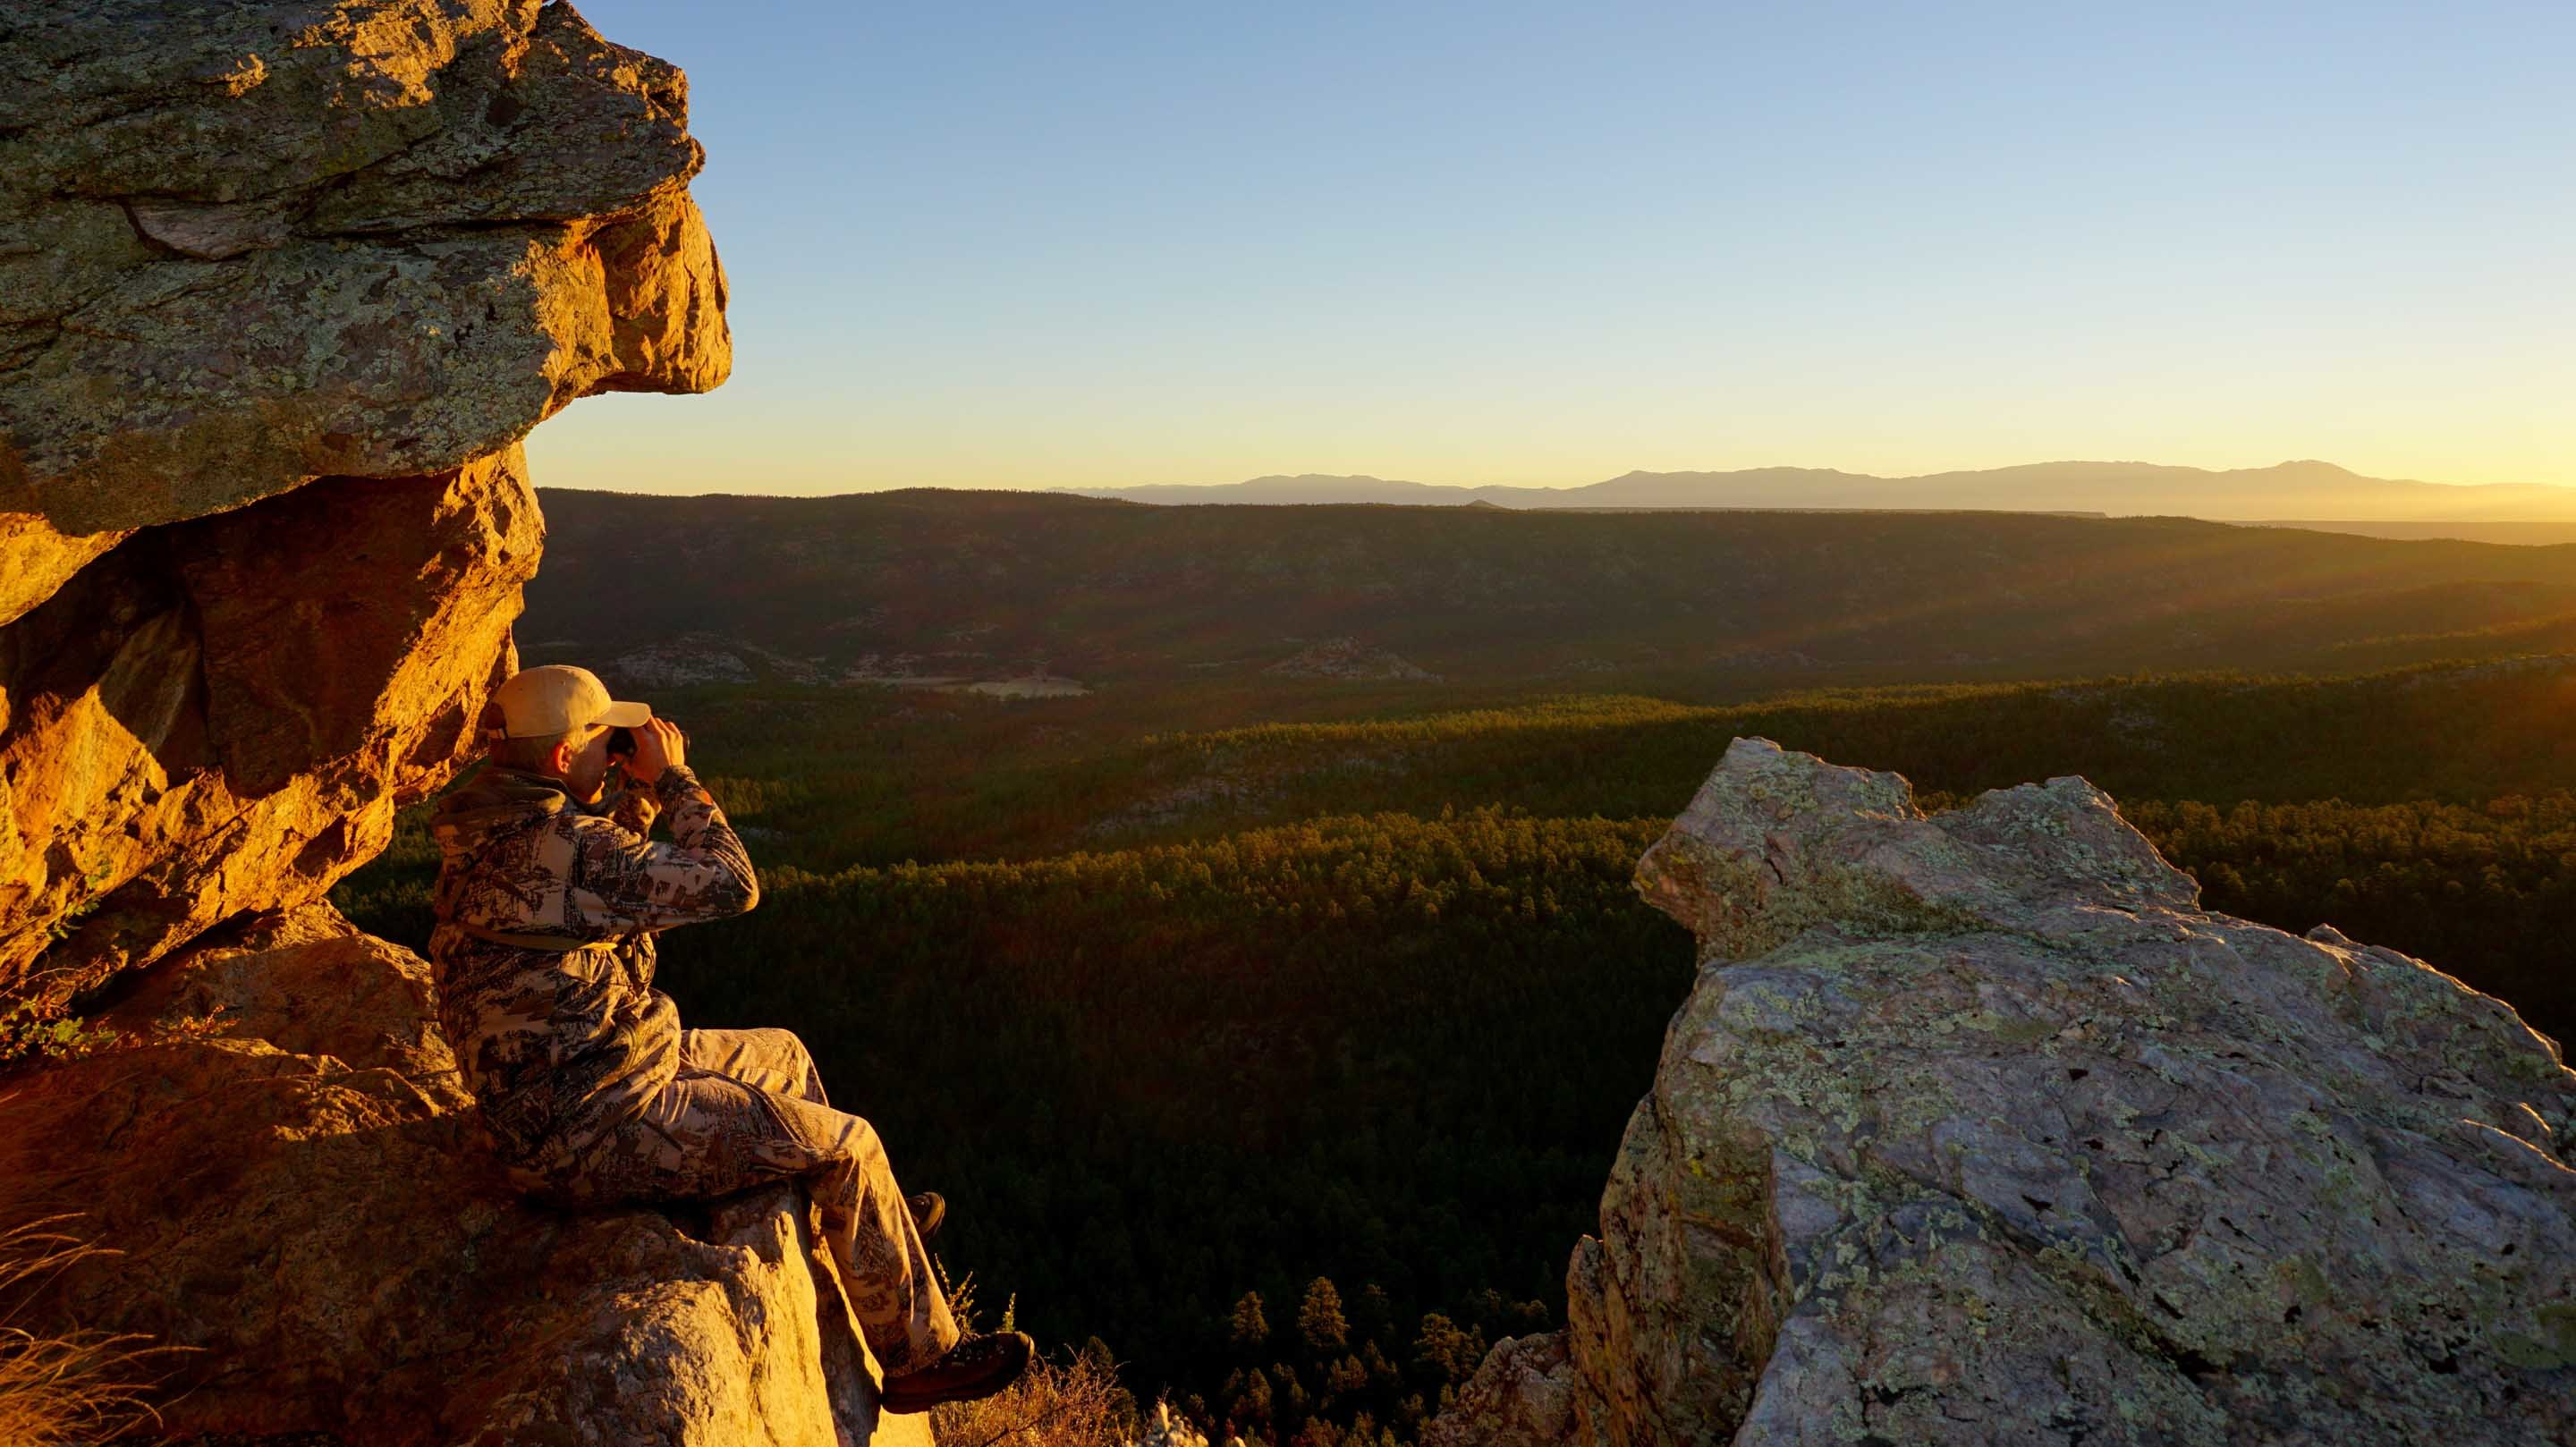 Image of hunter watching the sunset from a rocky mountainside in public lands.